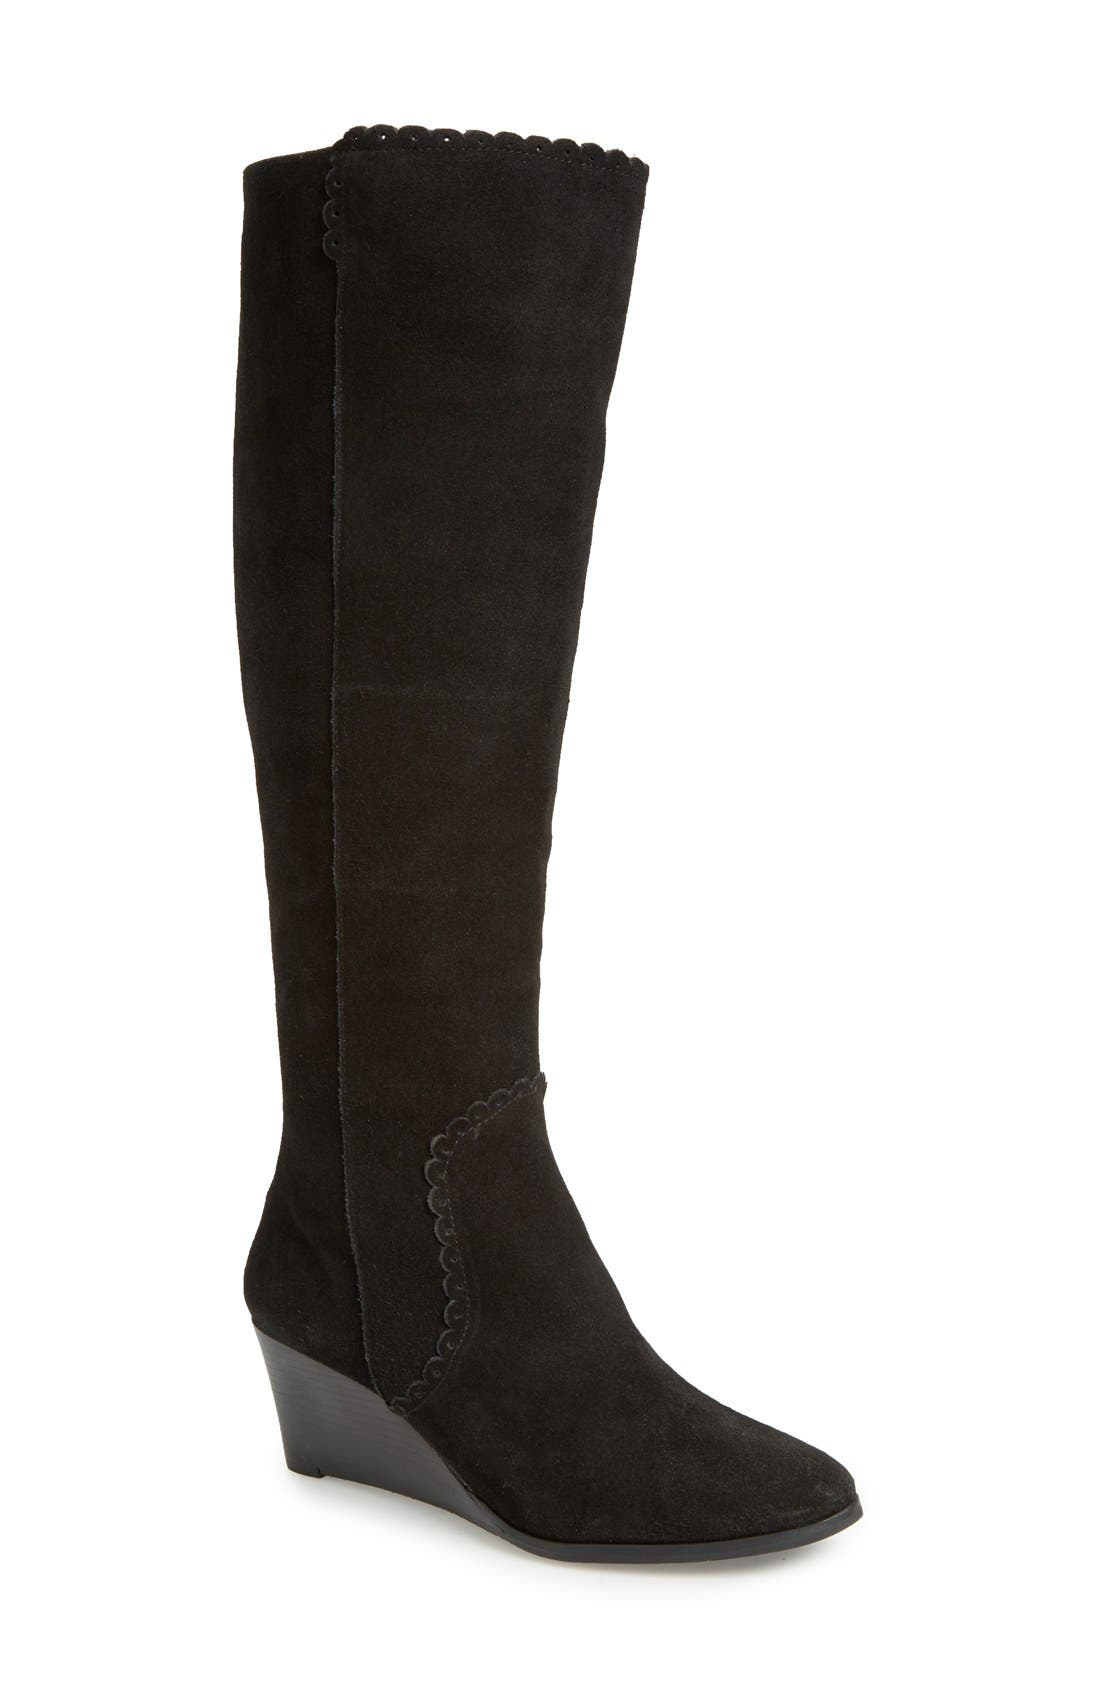 Main Image - Jack Rogers 'Mia' Knee High Wedge Boot (Women)